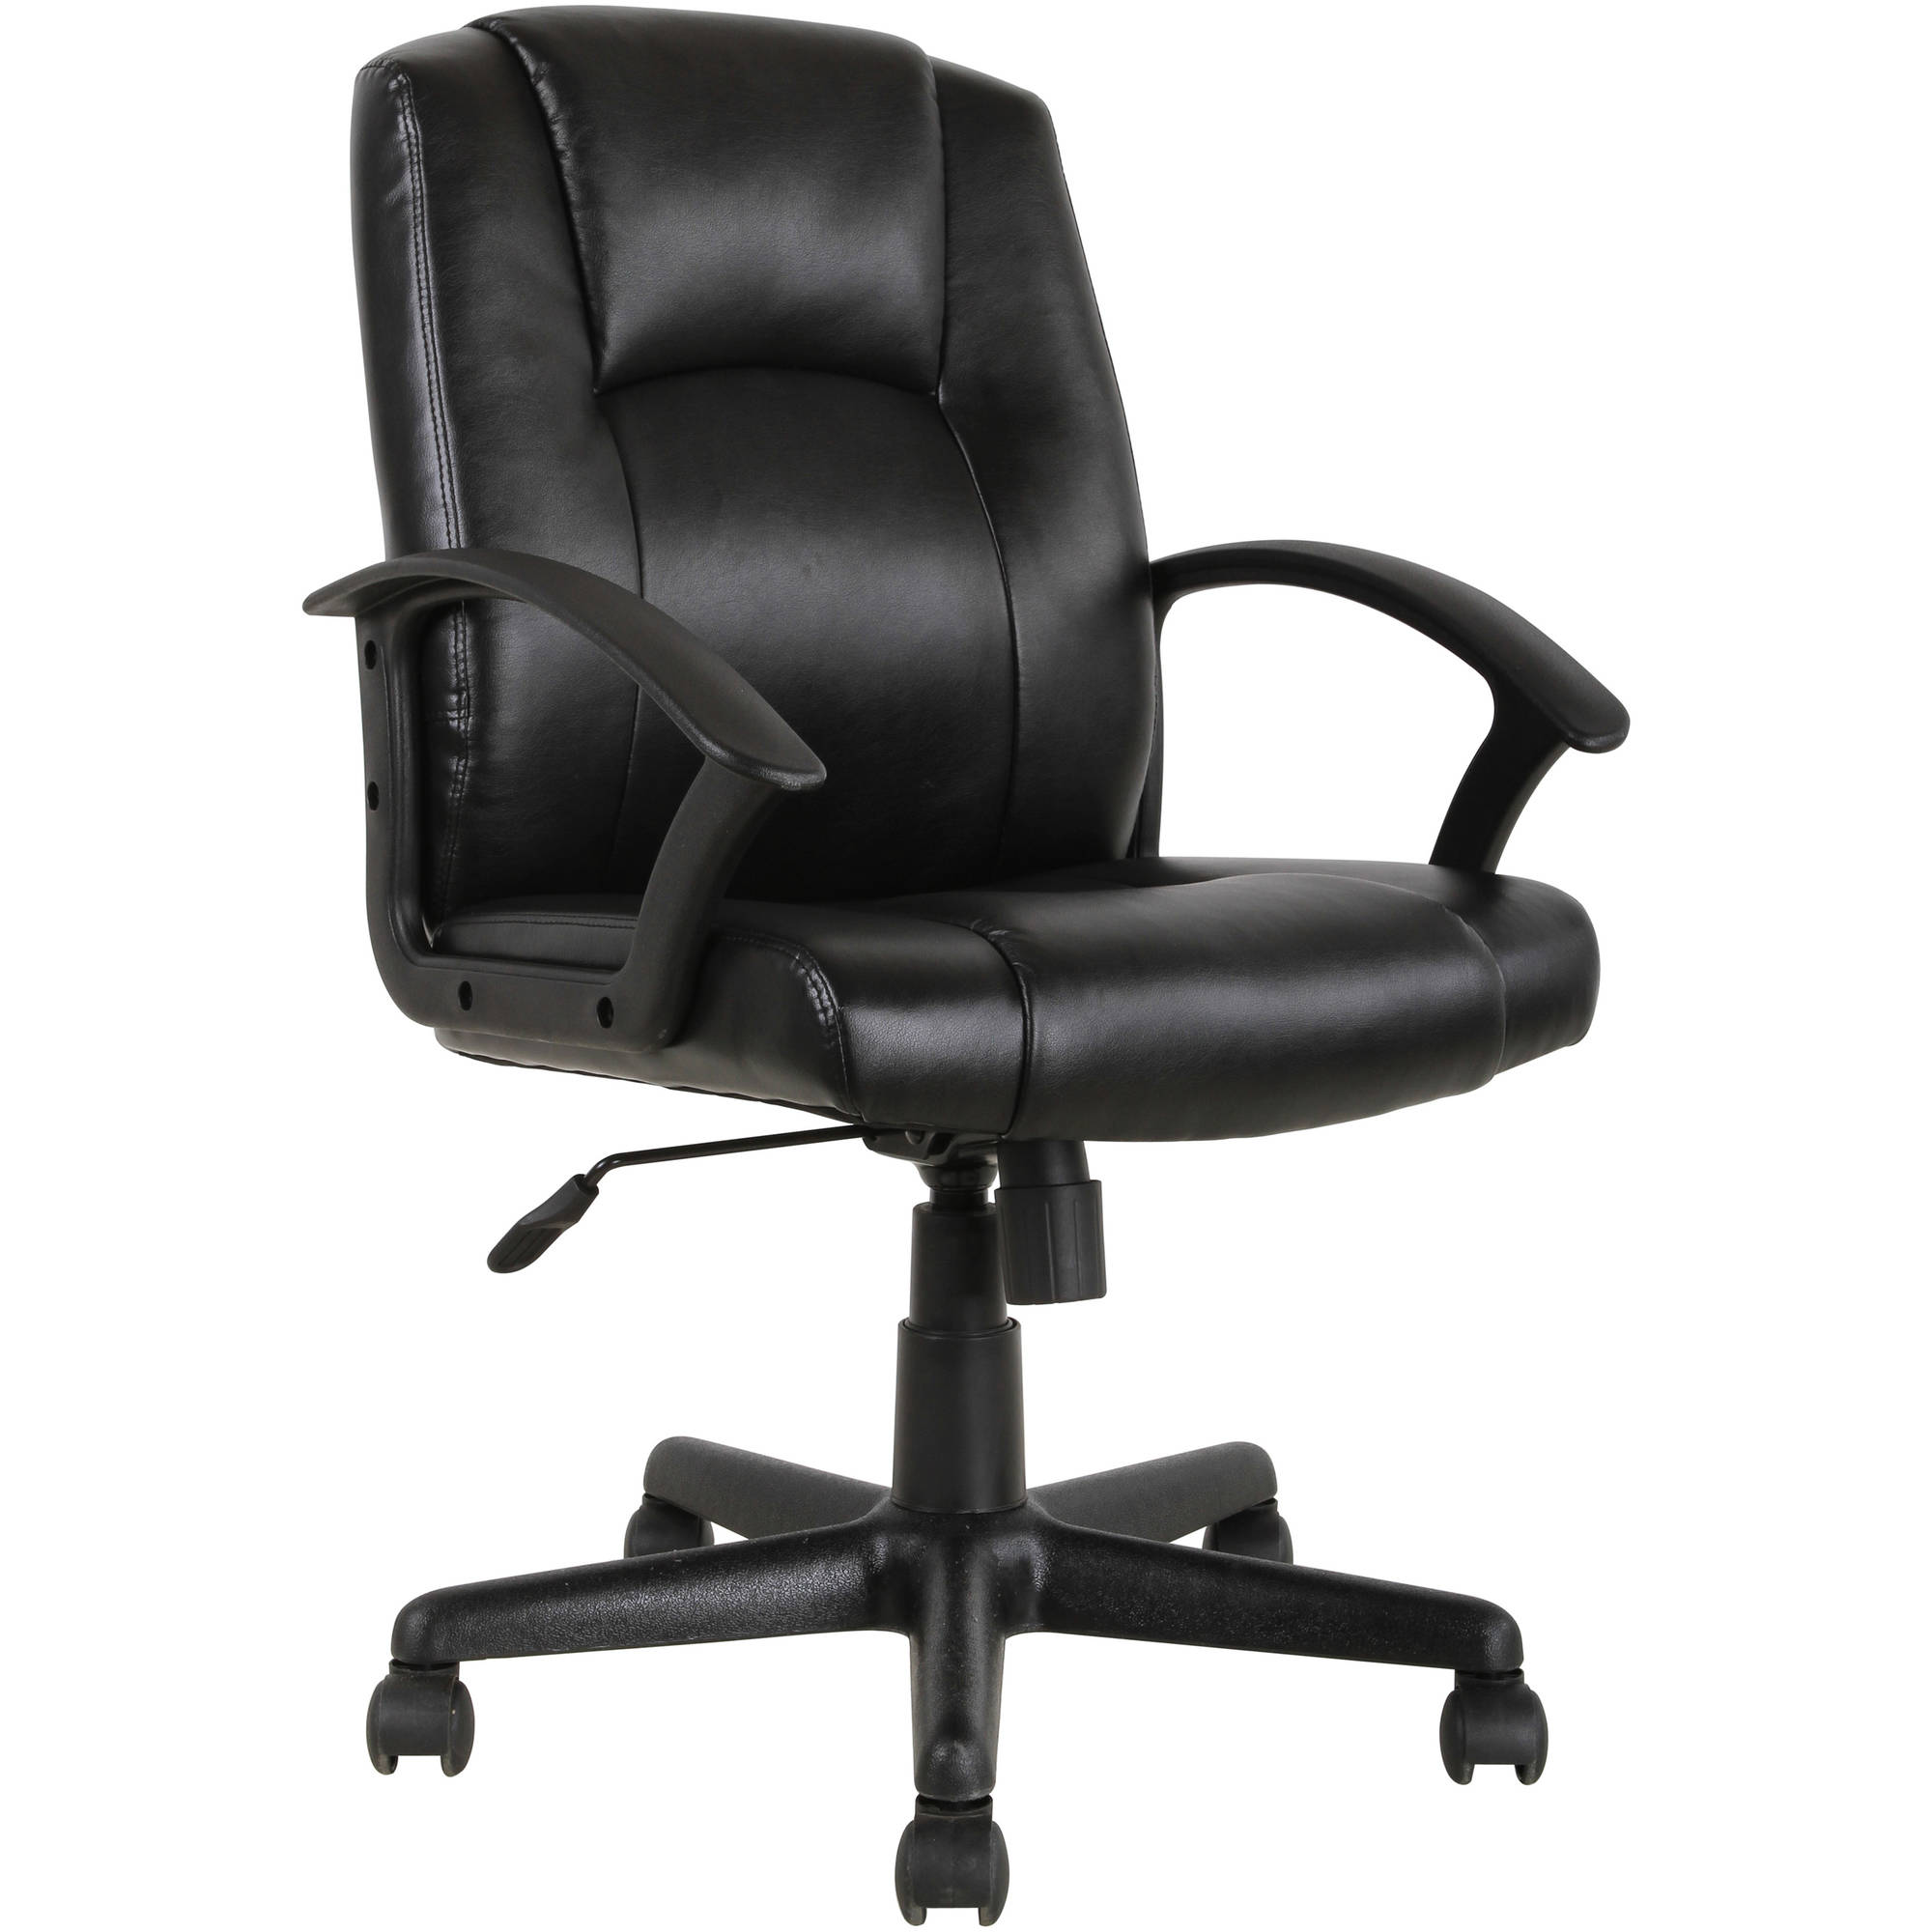 Qualities of computer chairs